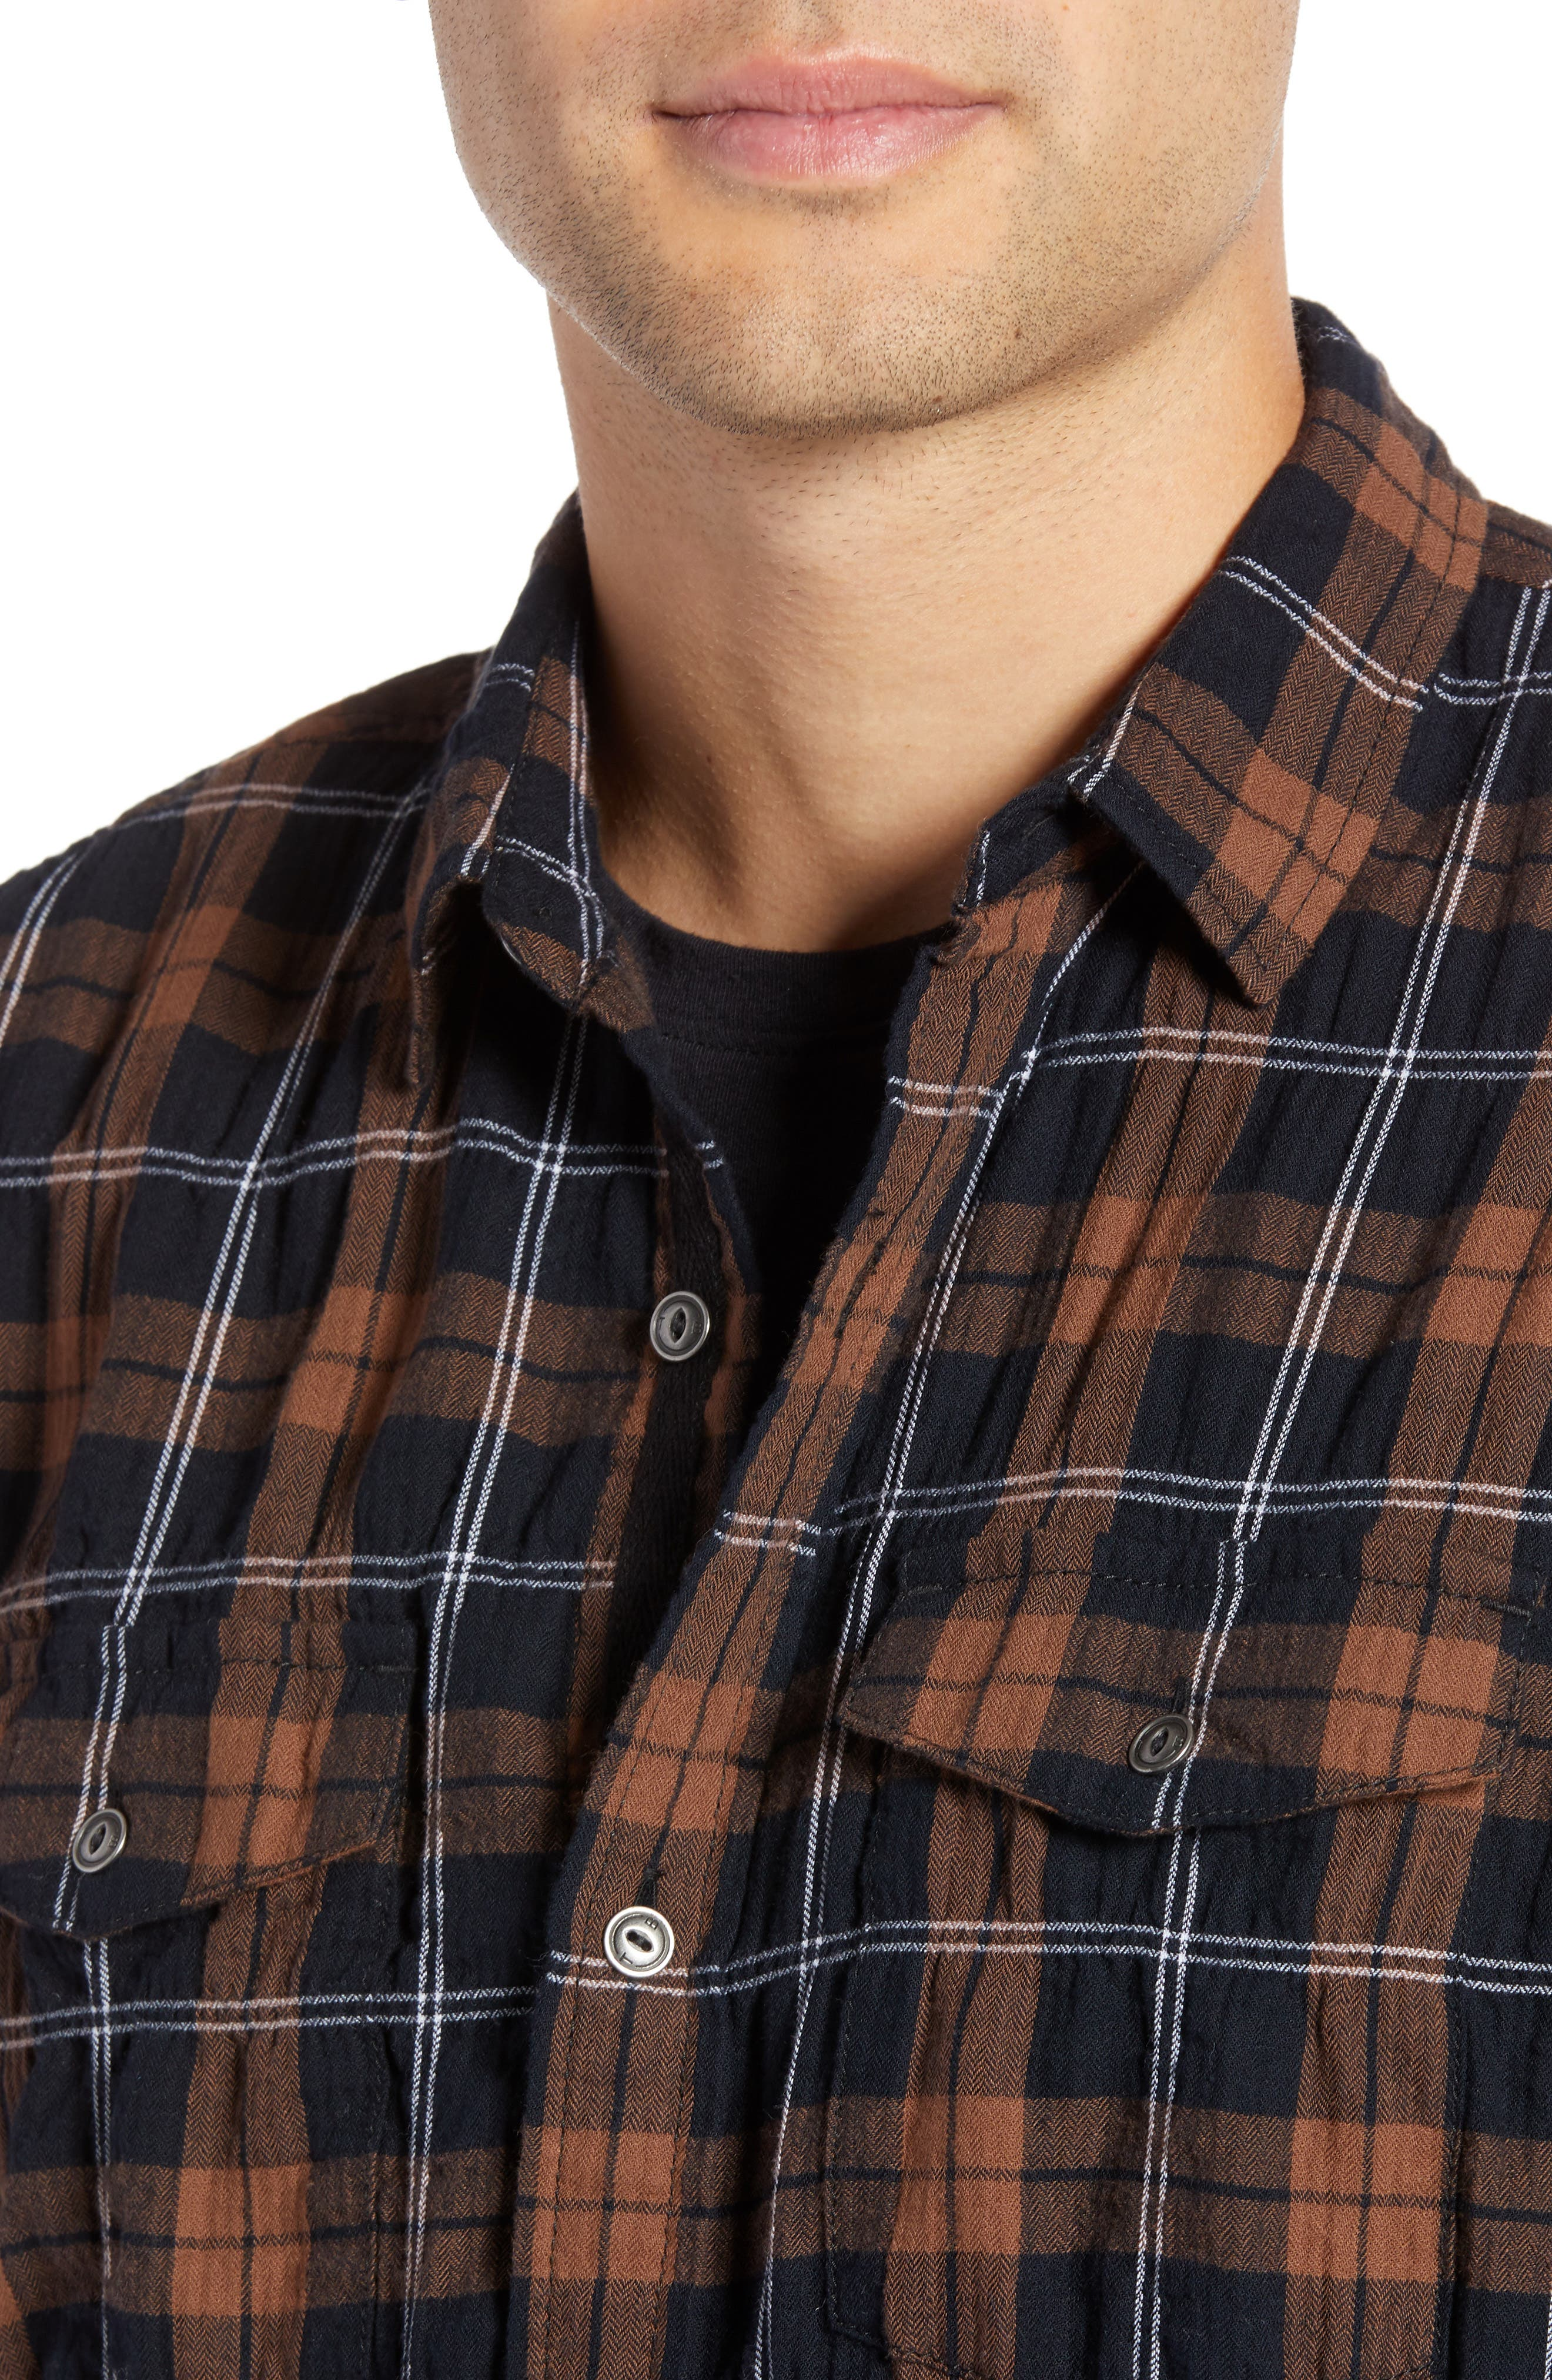 Regular Fit Plaid Sport Shirt,                             Alternate thumbnail 4, color,                             BLACK BROWN SMITH PLAID